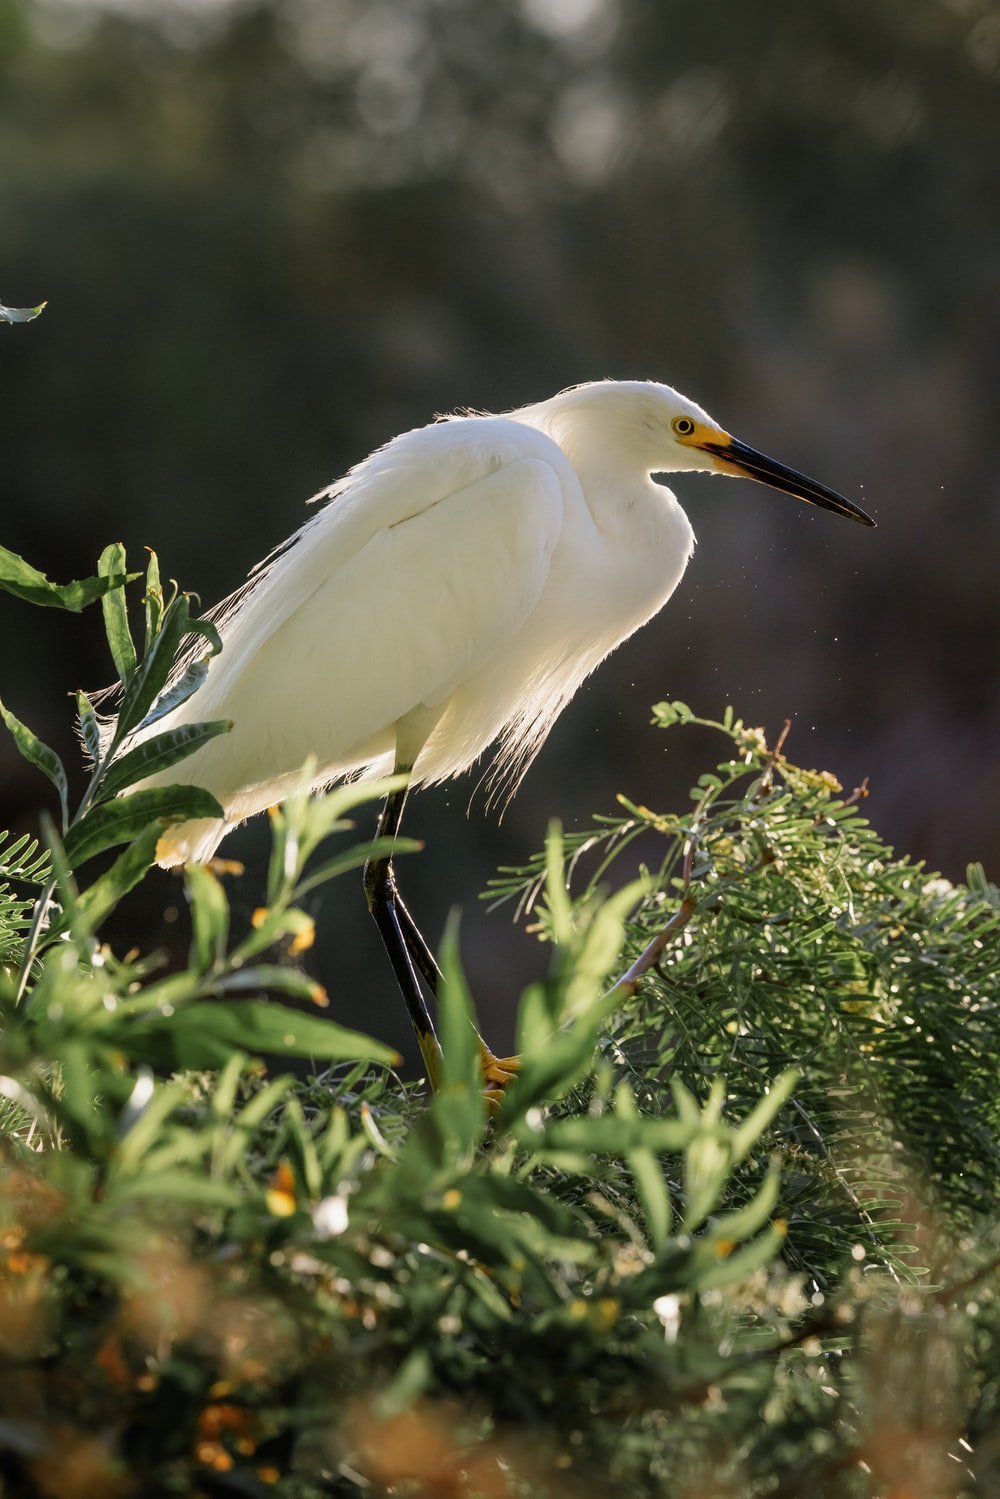 white egret perched on green plant during daytime